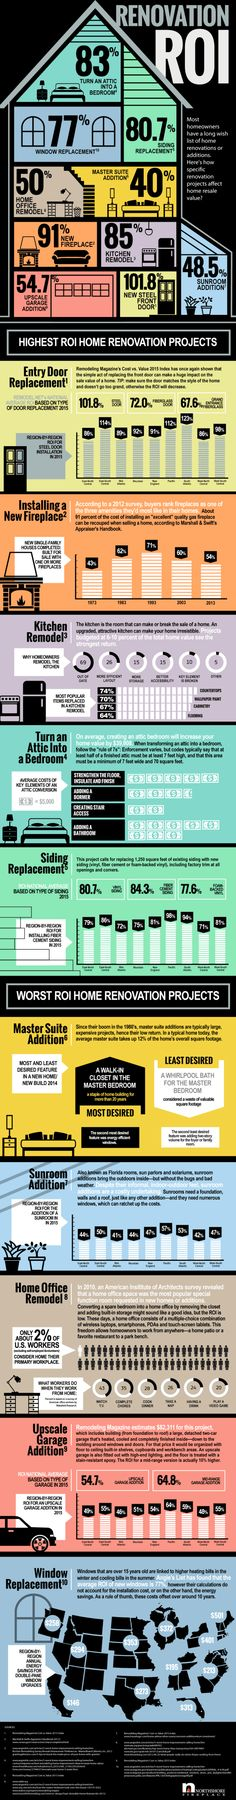 As a beginning home remodeler, it's smart to consider the ROI on your remodeling investment.  The average American Homeowner spends  $1,600 a year on home remodeling / home improvements according to The U.S Department of Commerce.   Consider the long term investment:  $8,000 in Five Years $24,000 in 15 Years IF you start now you can help build the value of your home,  and get a great ROI Tax Free when it comes time to sale.